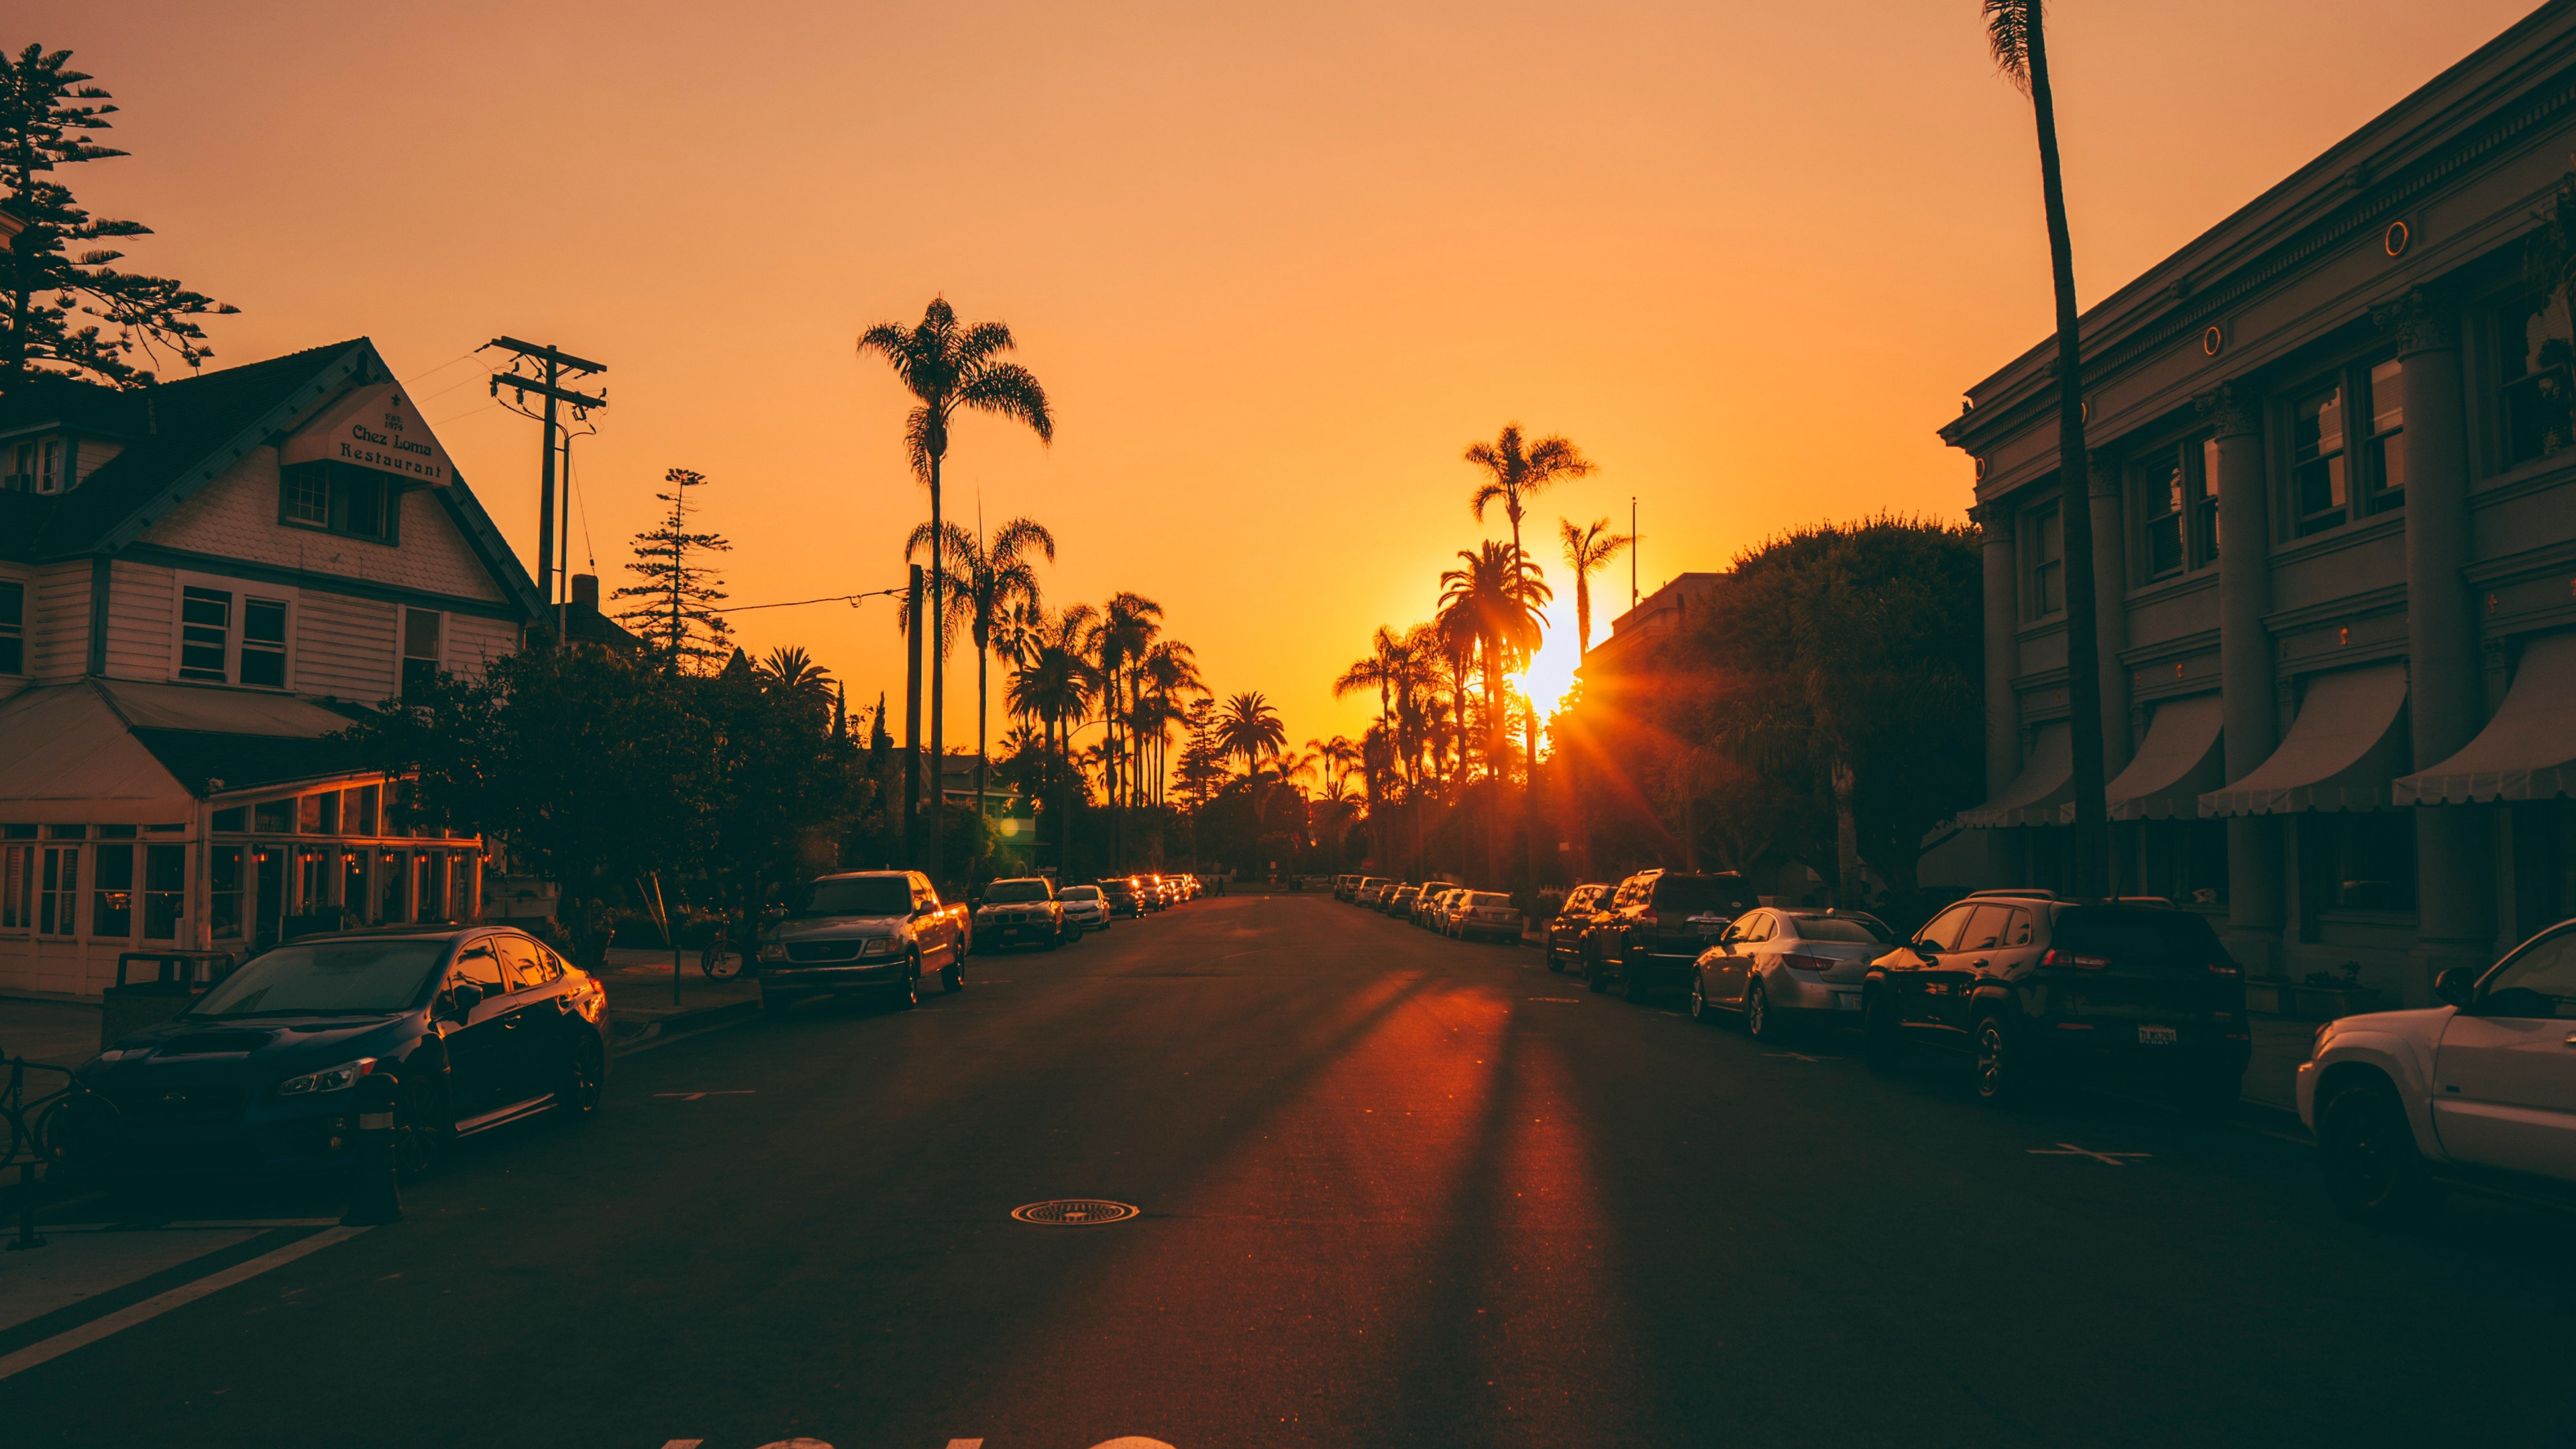 street sunset palm trees road road signs cars 4k 1538068692 - street, sunset, palm trees, road, road signs, cars 4k - sunset, Street, palm trees